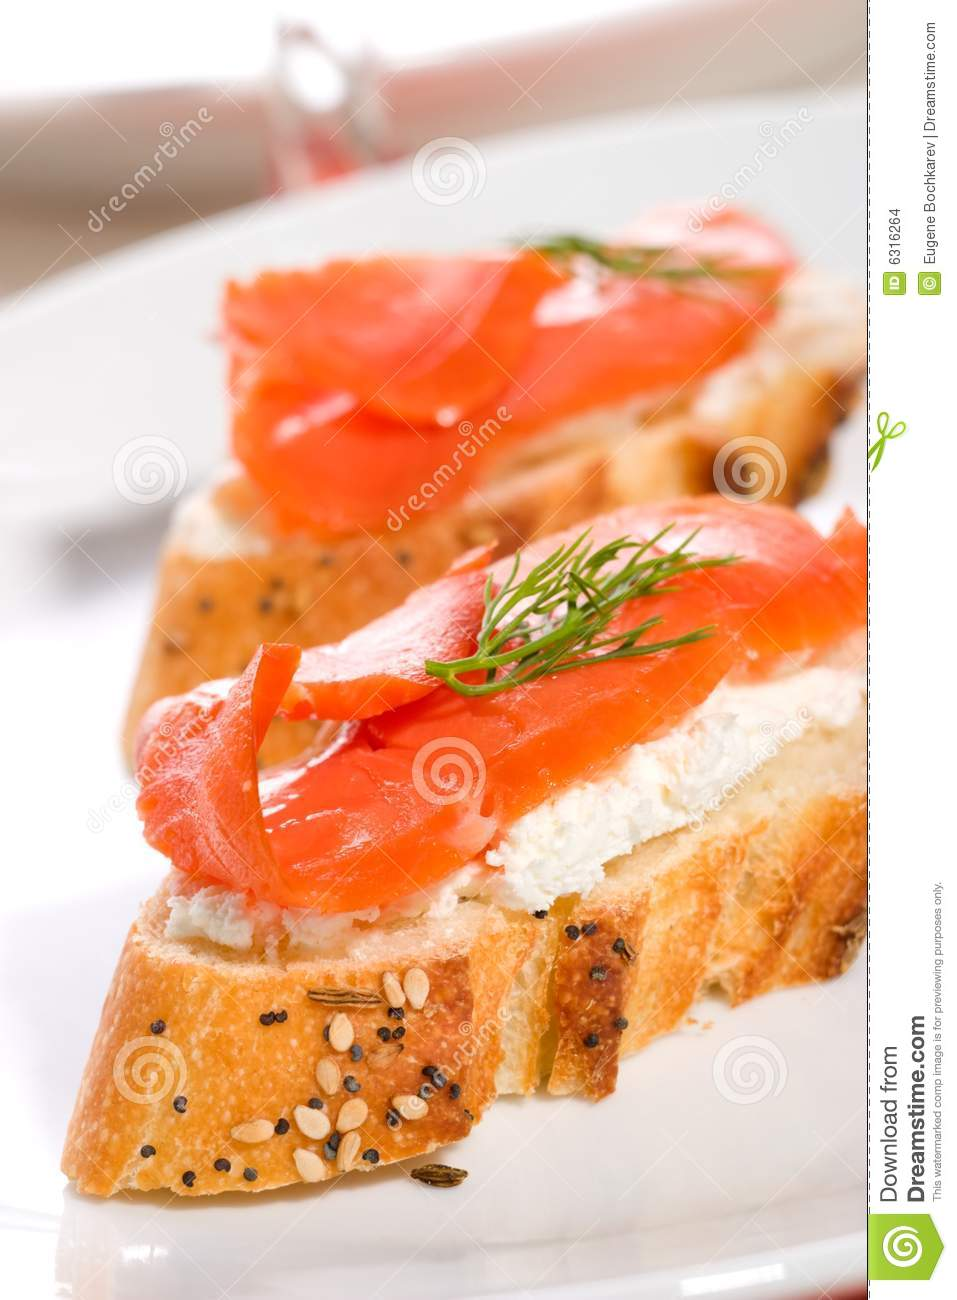 Salmon cheese canape stock images image 6316264 for Smoked salmon cream cheese canape